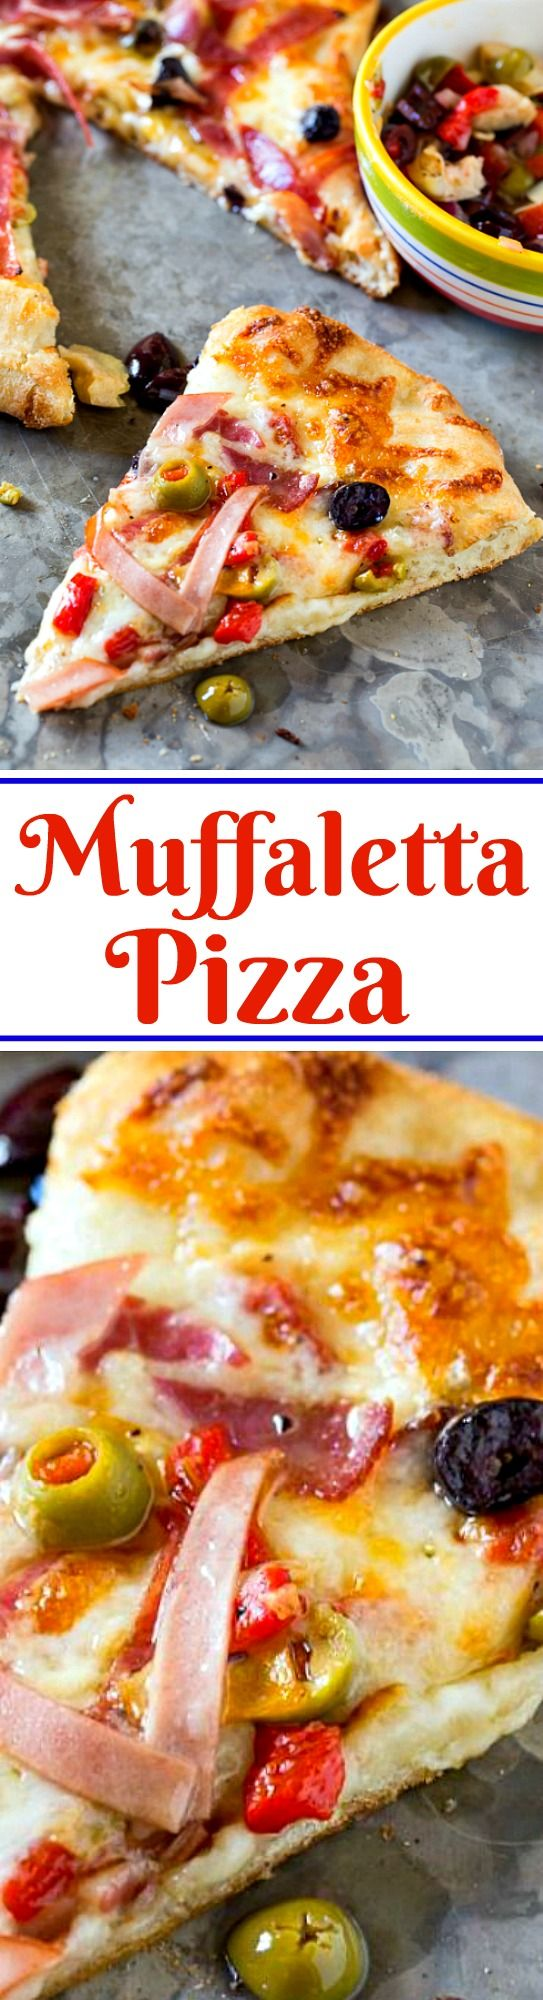 Muffaletta Pizza with all the flavors of the famous New Orleans sandwich.